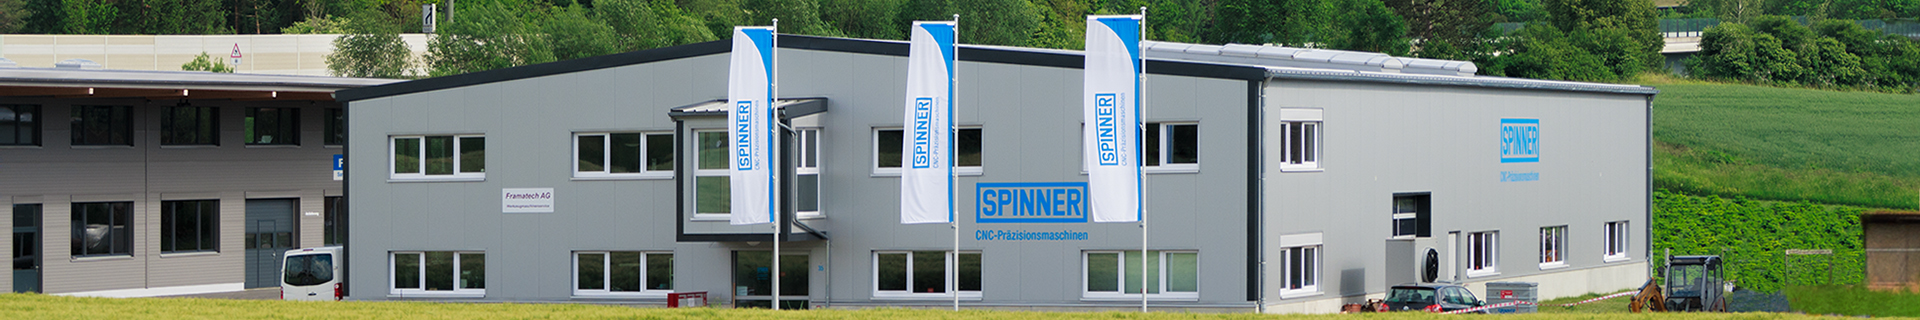 Spinner AG - Firmensitz